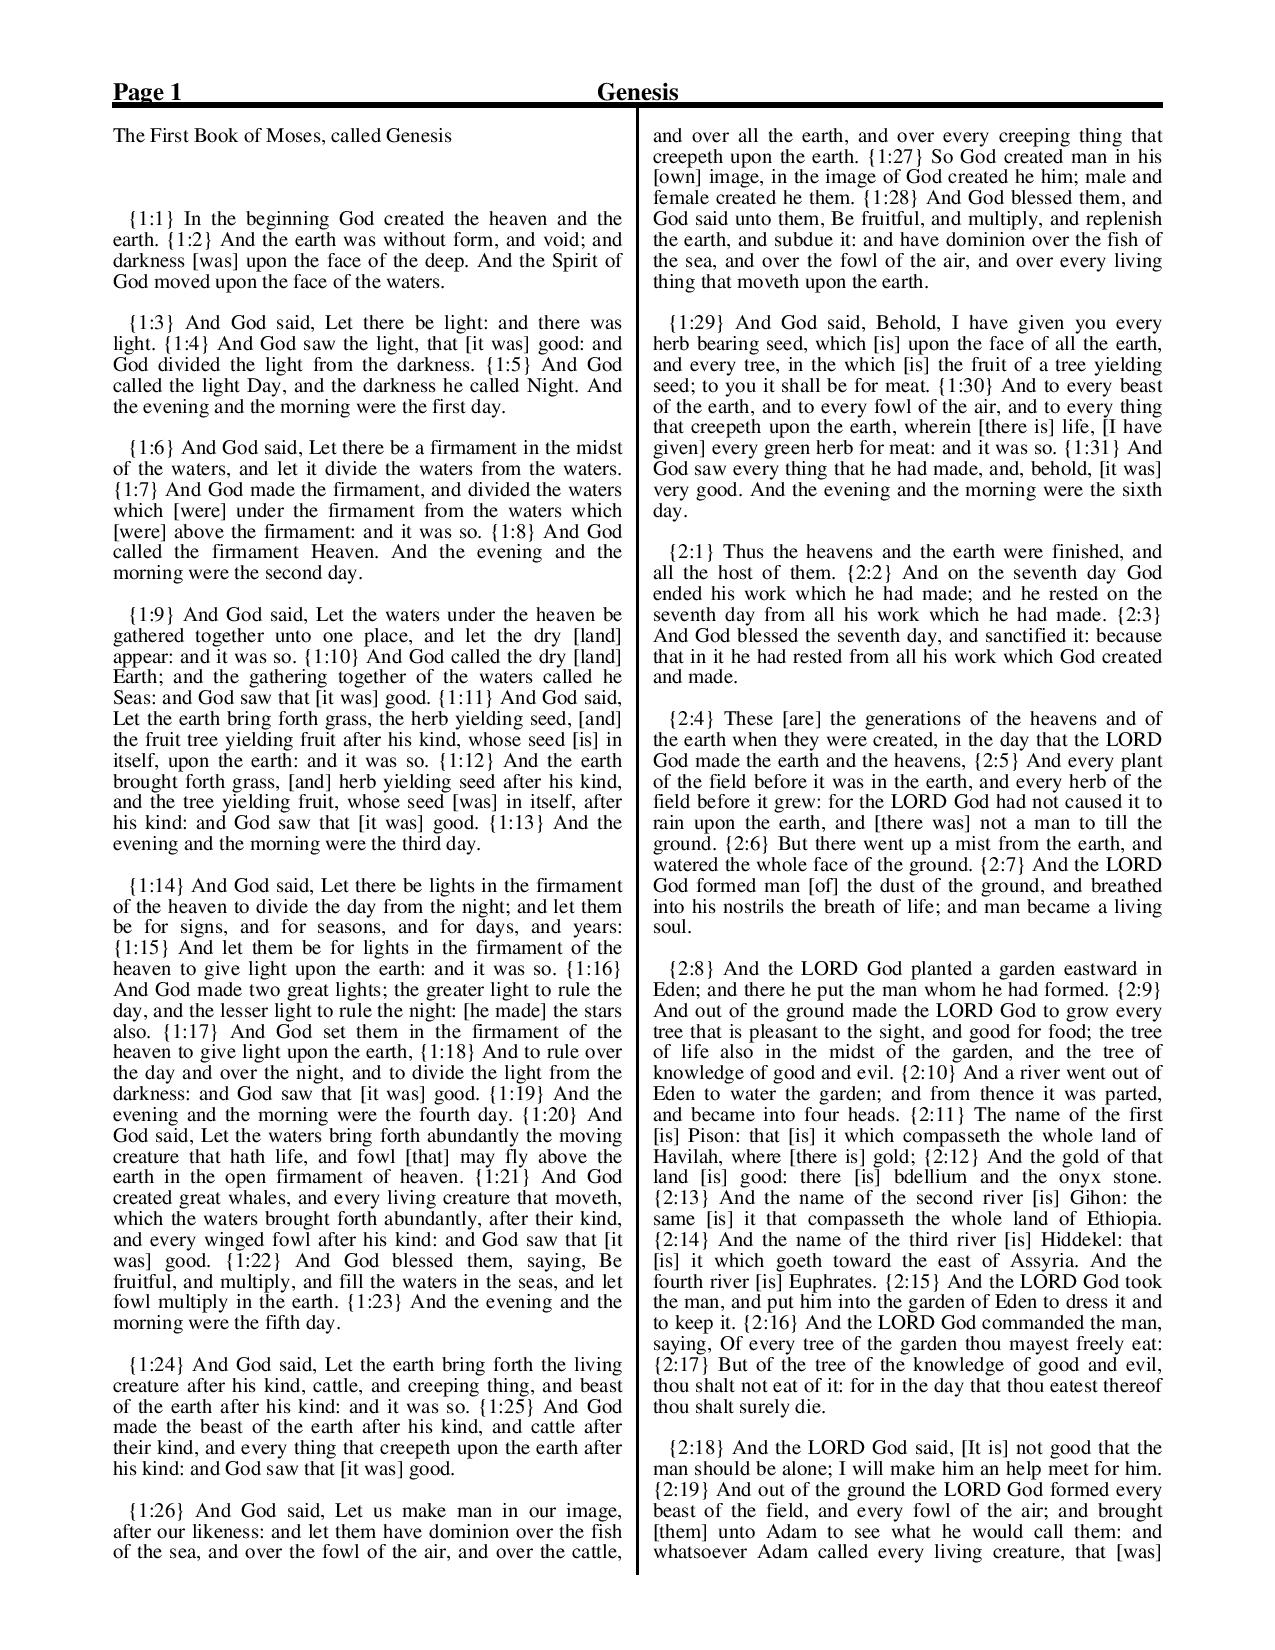 King-James-Bible-KJV-Bible-PDF-page-022